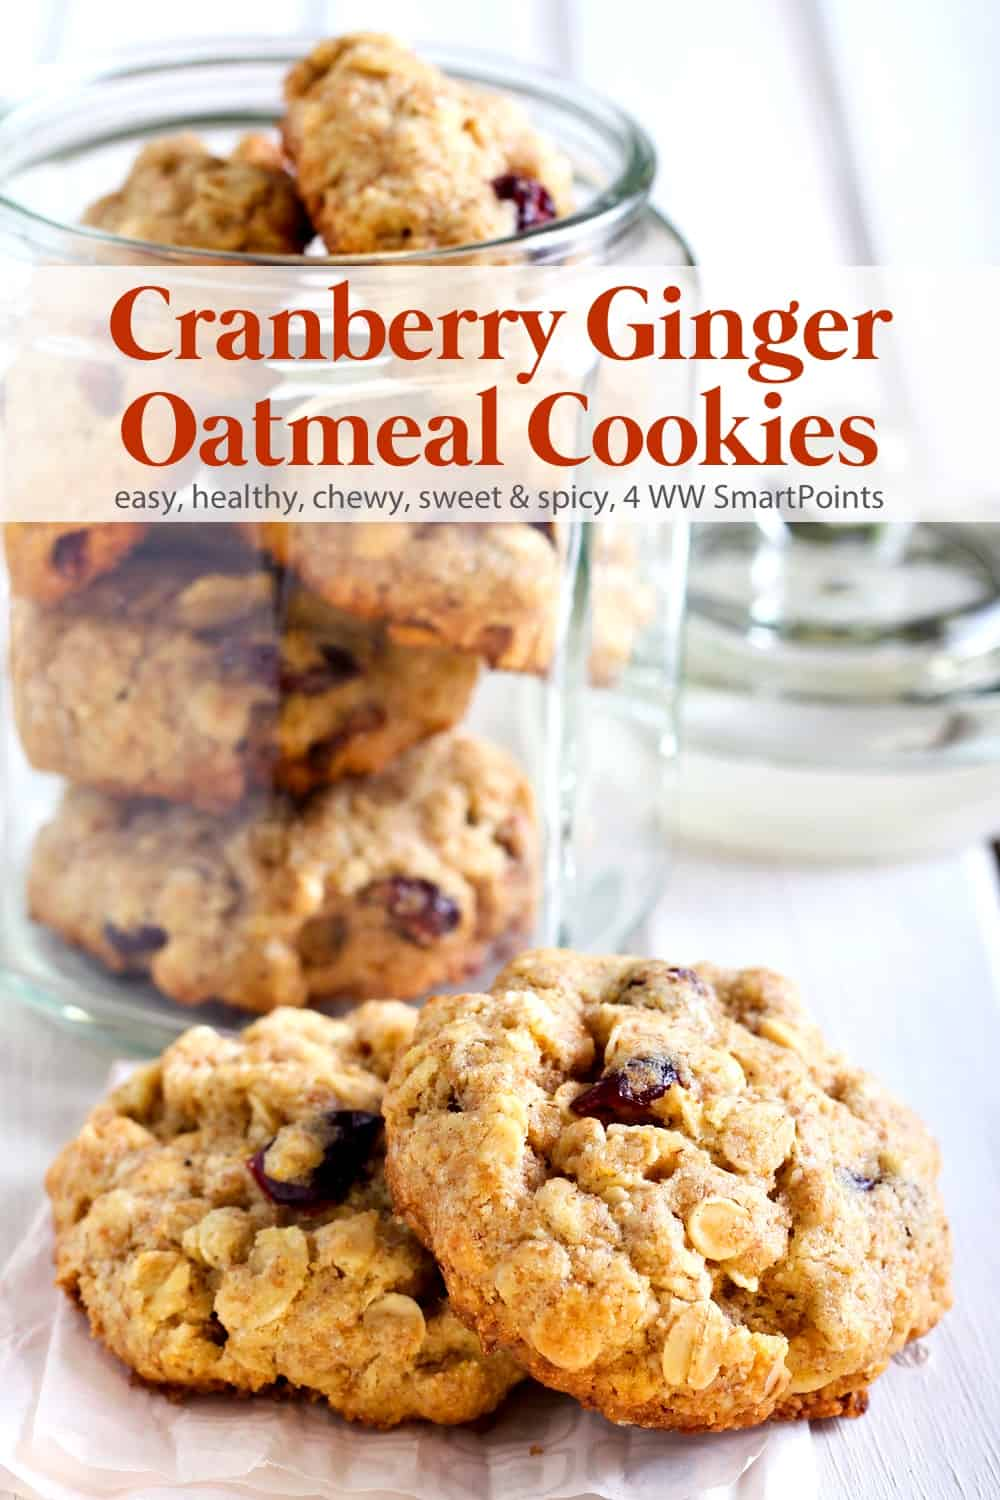 A moist and chewy low-fat cookie with the perfect combination of sweet and spice perfect for the holidays - these Cranberry Ginger Oatmeal Cookies have just 4 WW Freestyle SmartPoints each! #cranberrygingeroatmealcookies #oatmealcookies #cookies